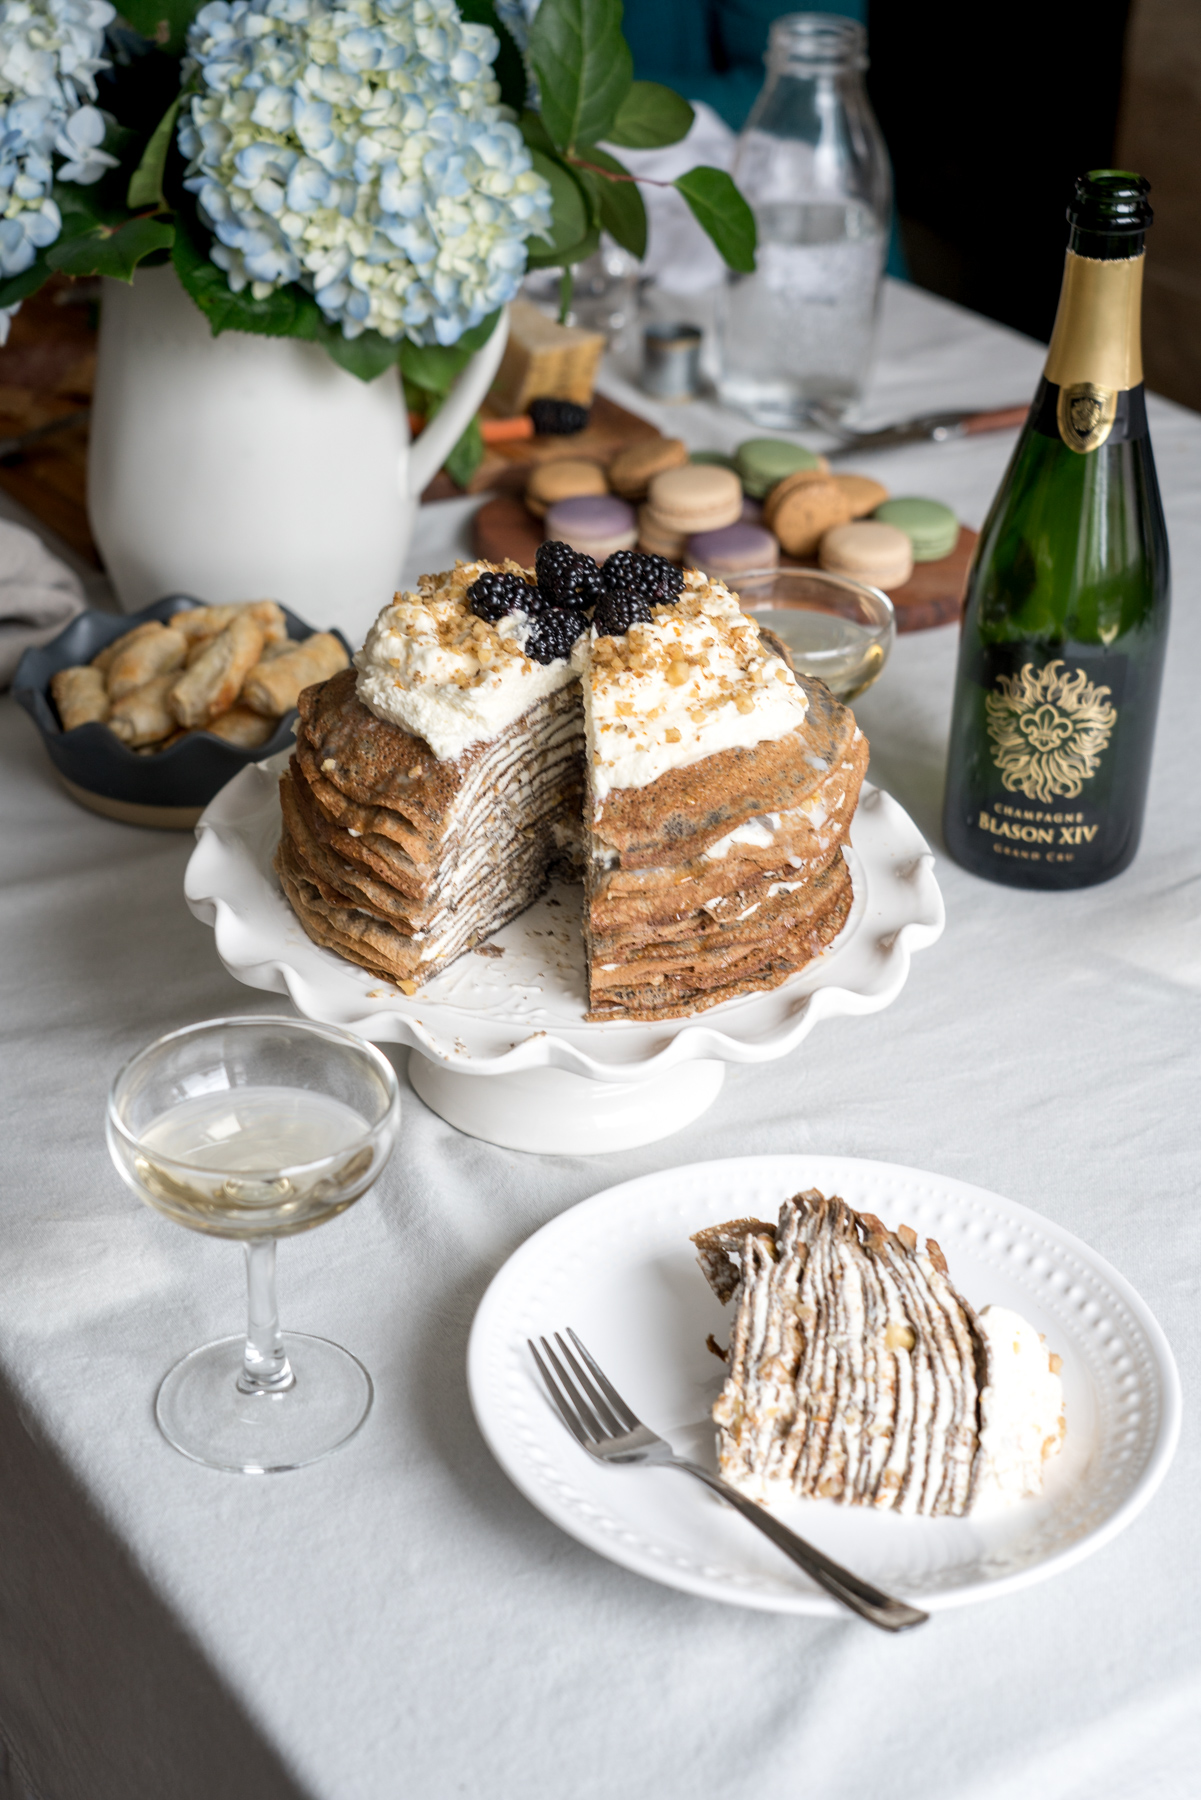 Buckwheat Crêpe Cake with Whipped Cream Cheese, Walnuts, and Honey - Brunchographers' French-Inspired Wine Tasting Brunch